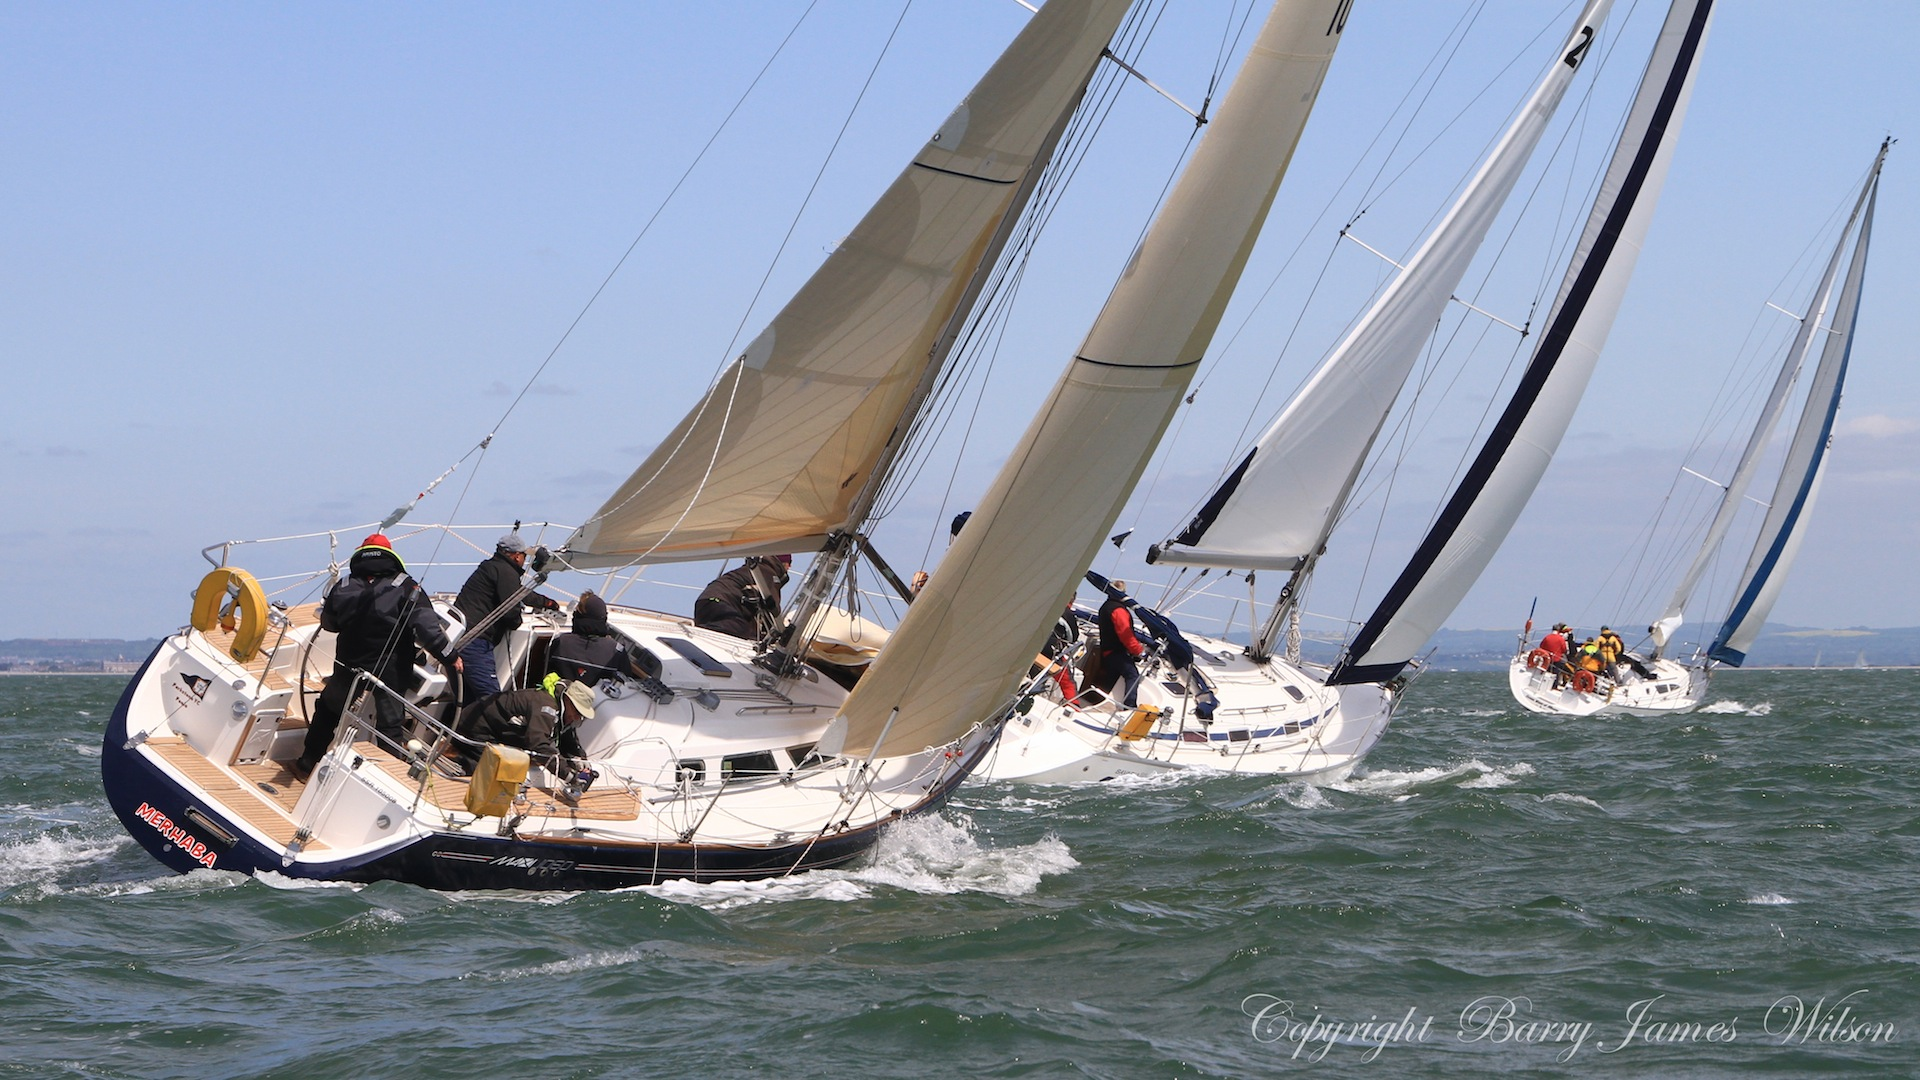 Sailing Wallpaper Racing Images & Pictures - Becuo